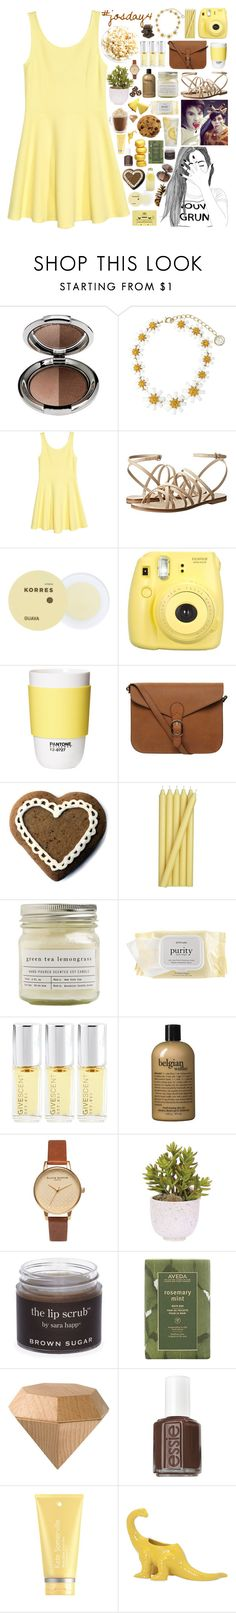 """I showed you the game everybody else was playing"" by outfitsbyamalia ❤ liked on Polyvore featuring philosophy, Dolce&Gabbana, See by Chloé, CASSETTE, Korres, Fujifilm, ROOM COPENHAGEN, Dorothy Perkins, Crate and Barrel and Brooklyn Candle Studio"